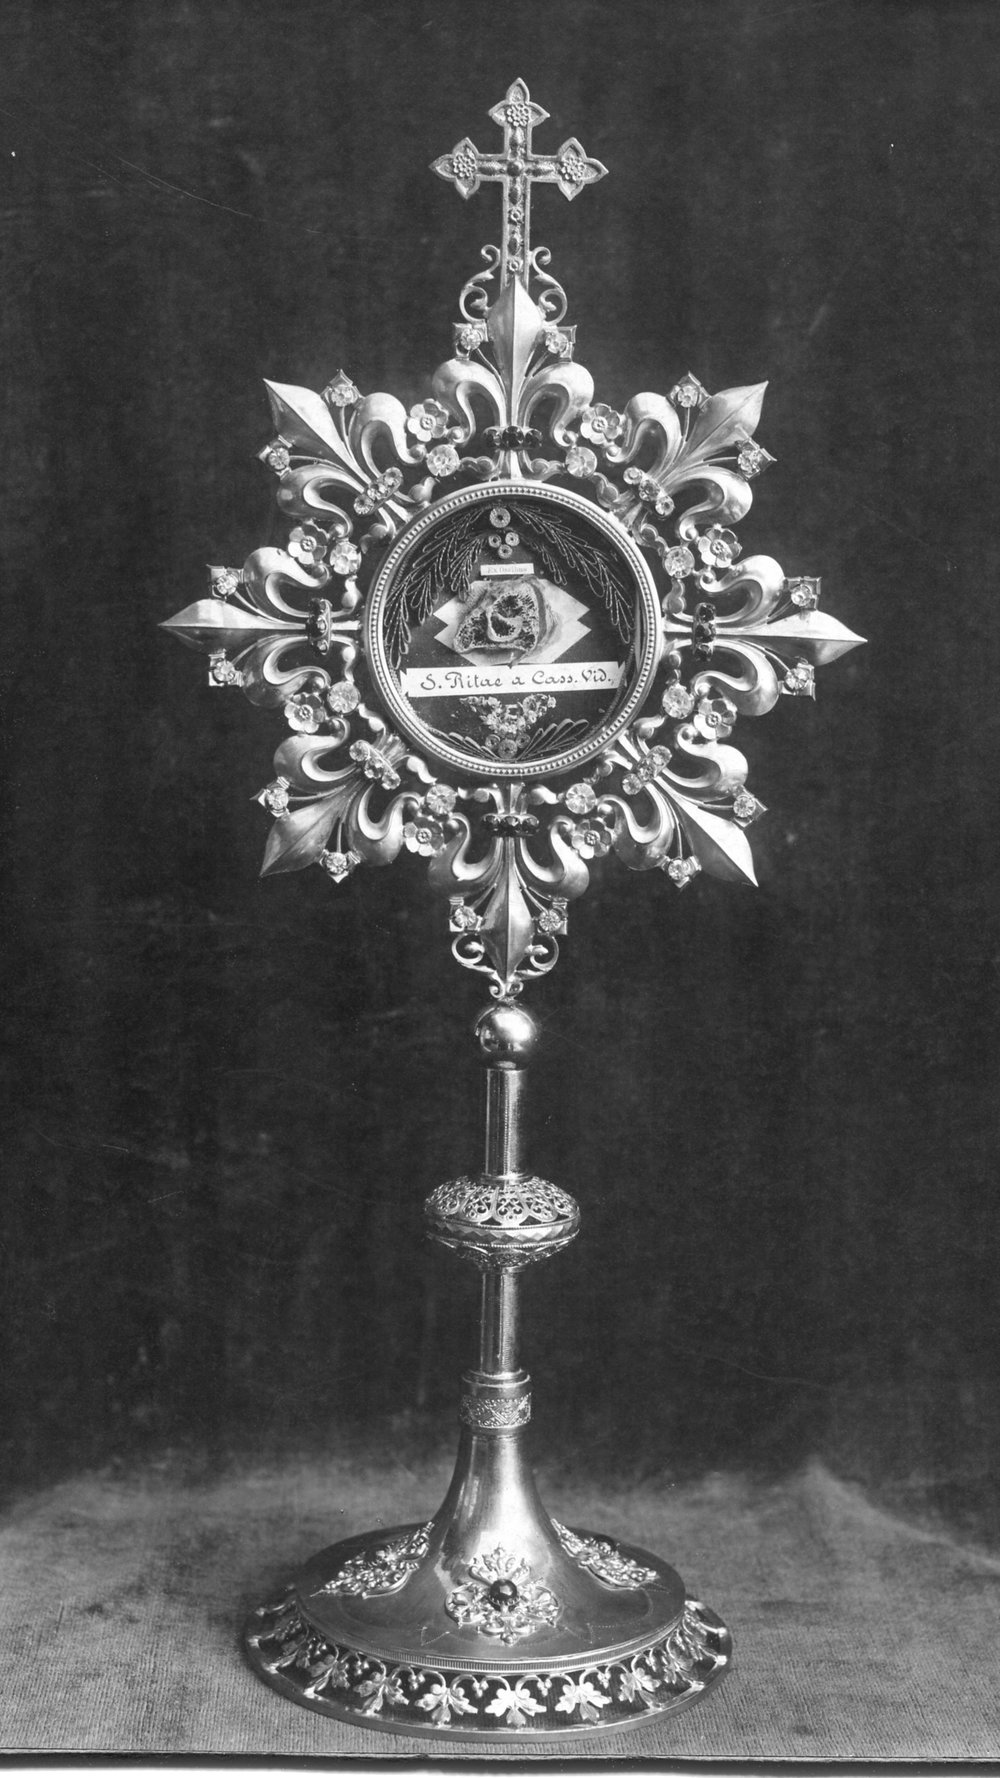 Early black & white photo of the relic of St. Rita of Cascia